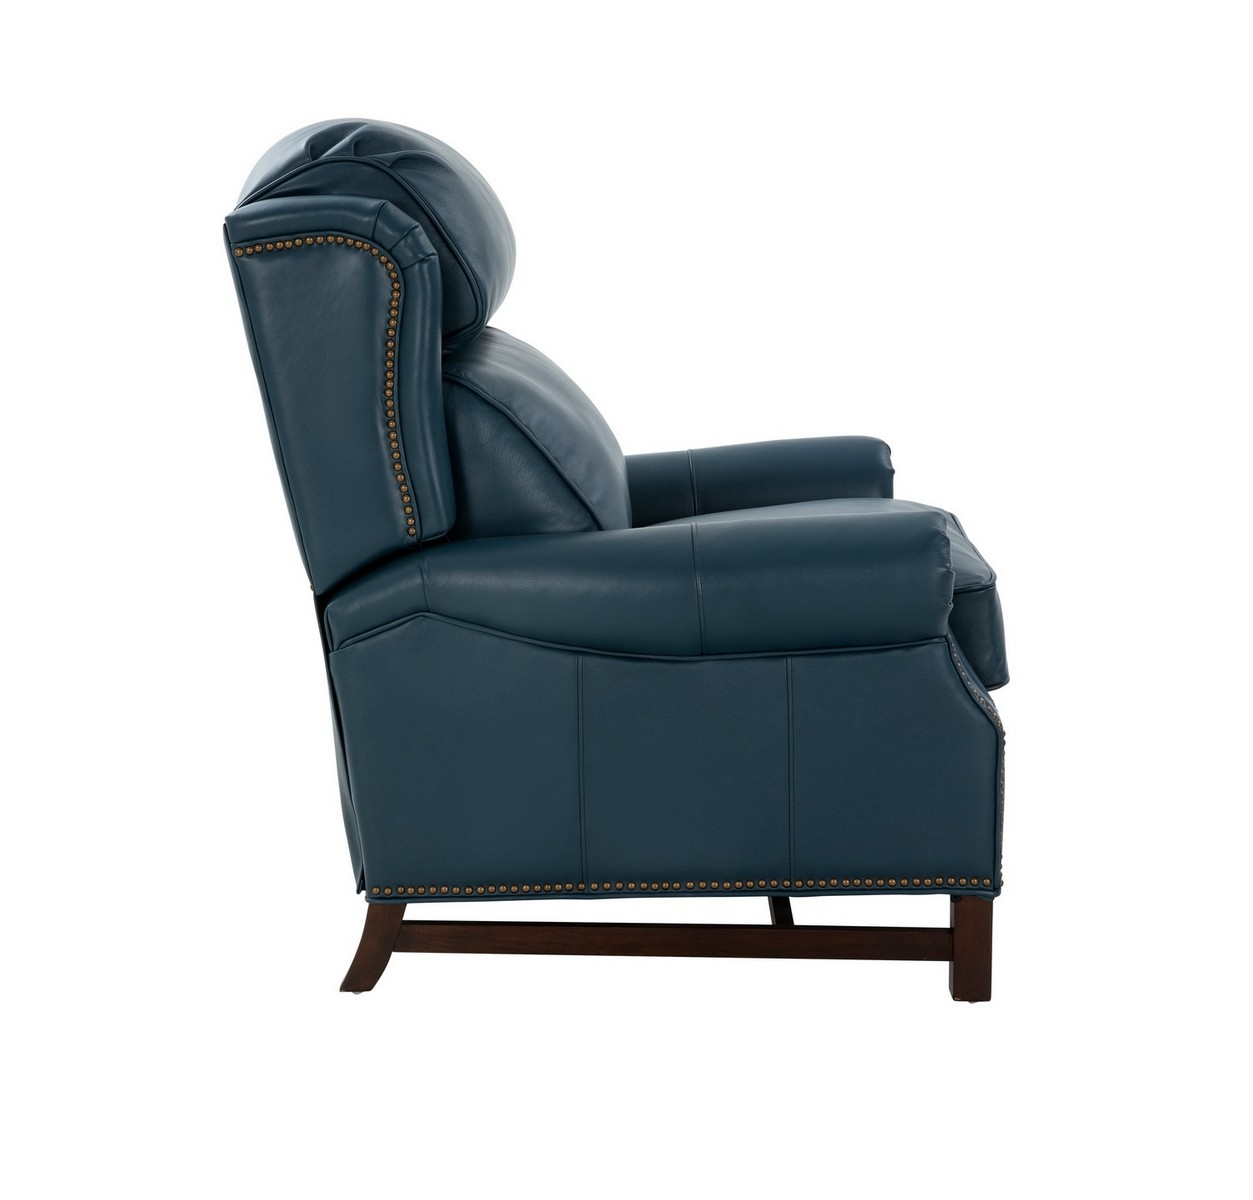 Barcalounger Thornfield Recliner Chair - Prestin Yale Blue/All Leather